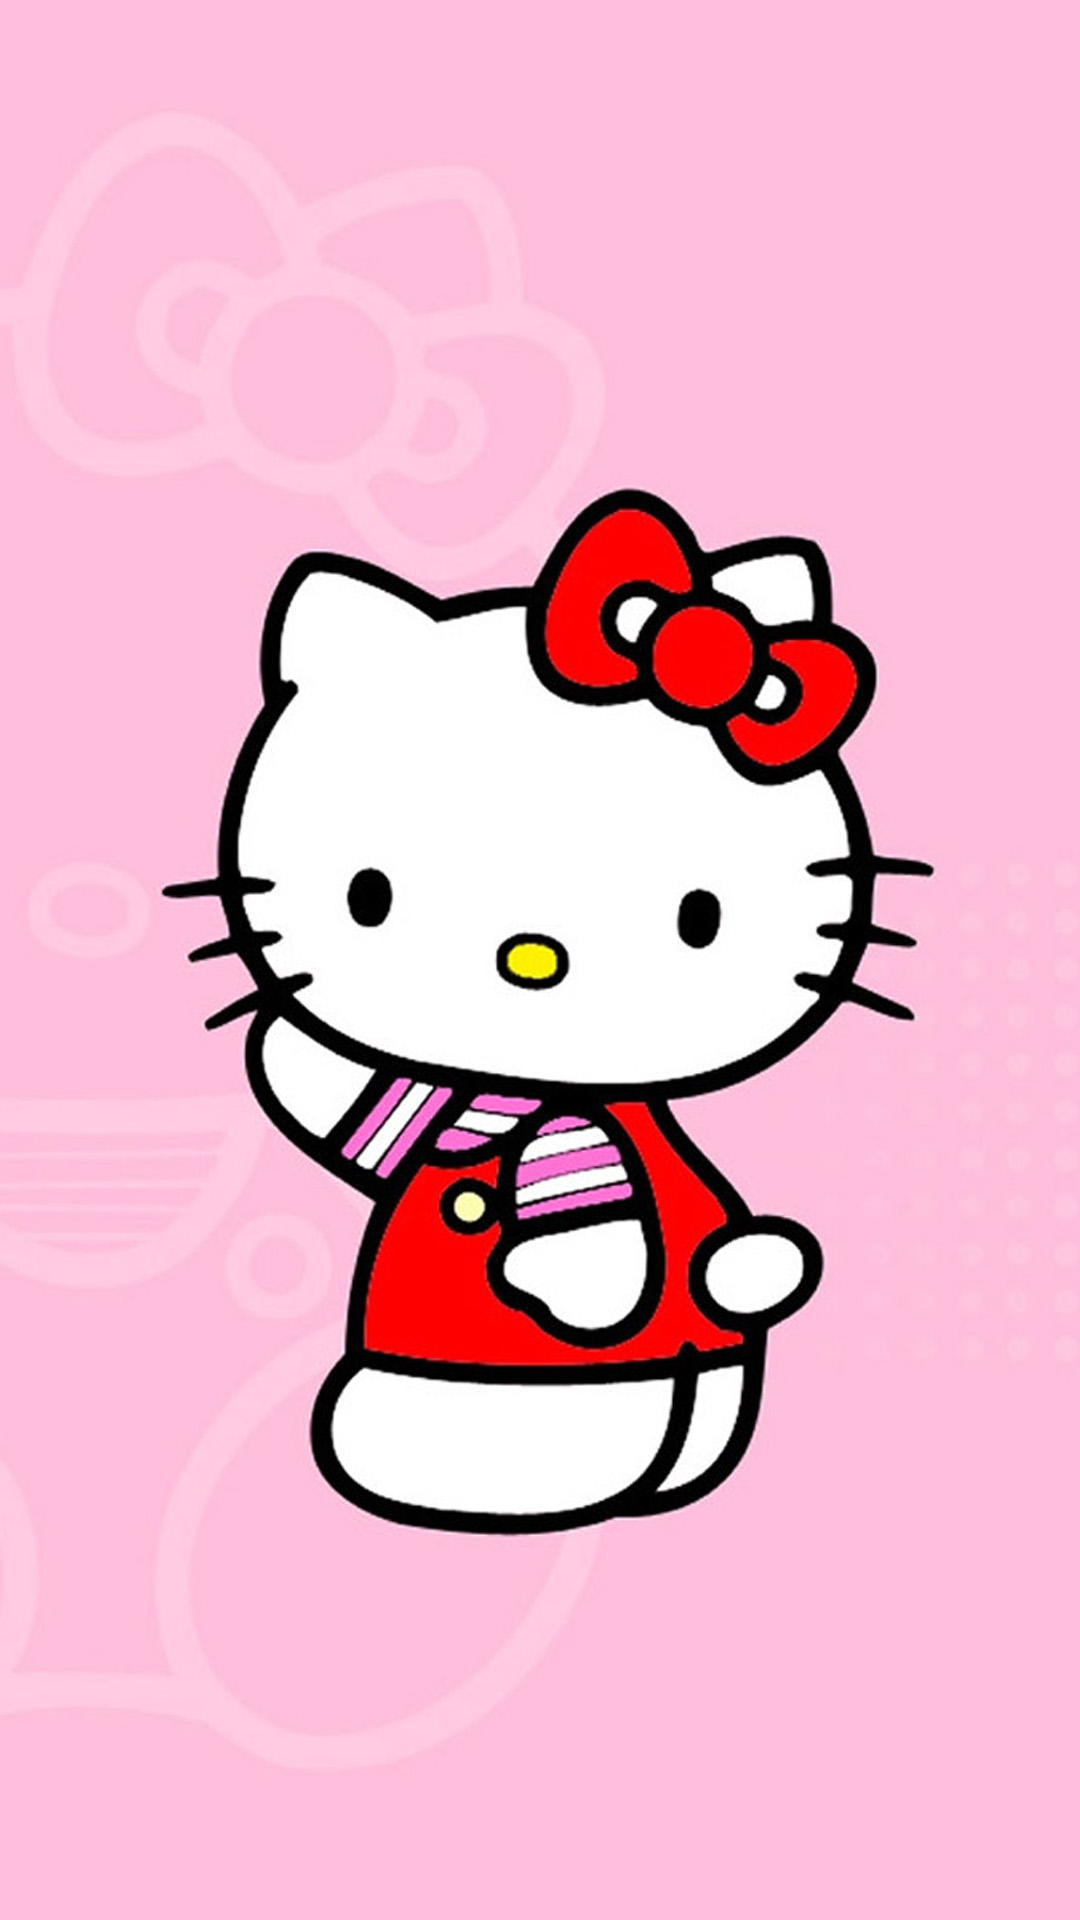 bb0425dd7 Hello Kitty Wallpaper iPhone 6 Plus Wallpapers HD 1080x1920